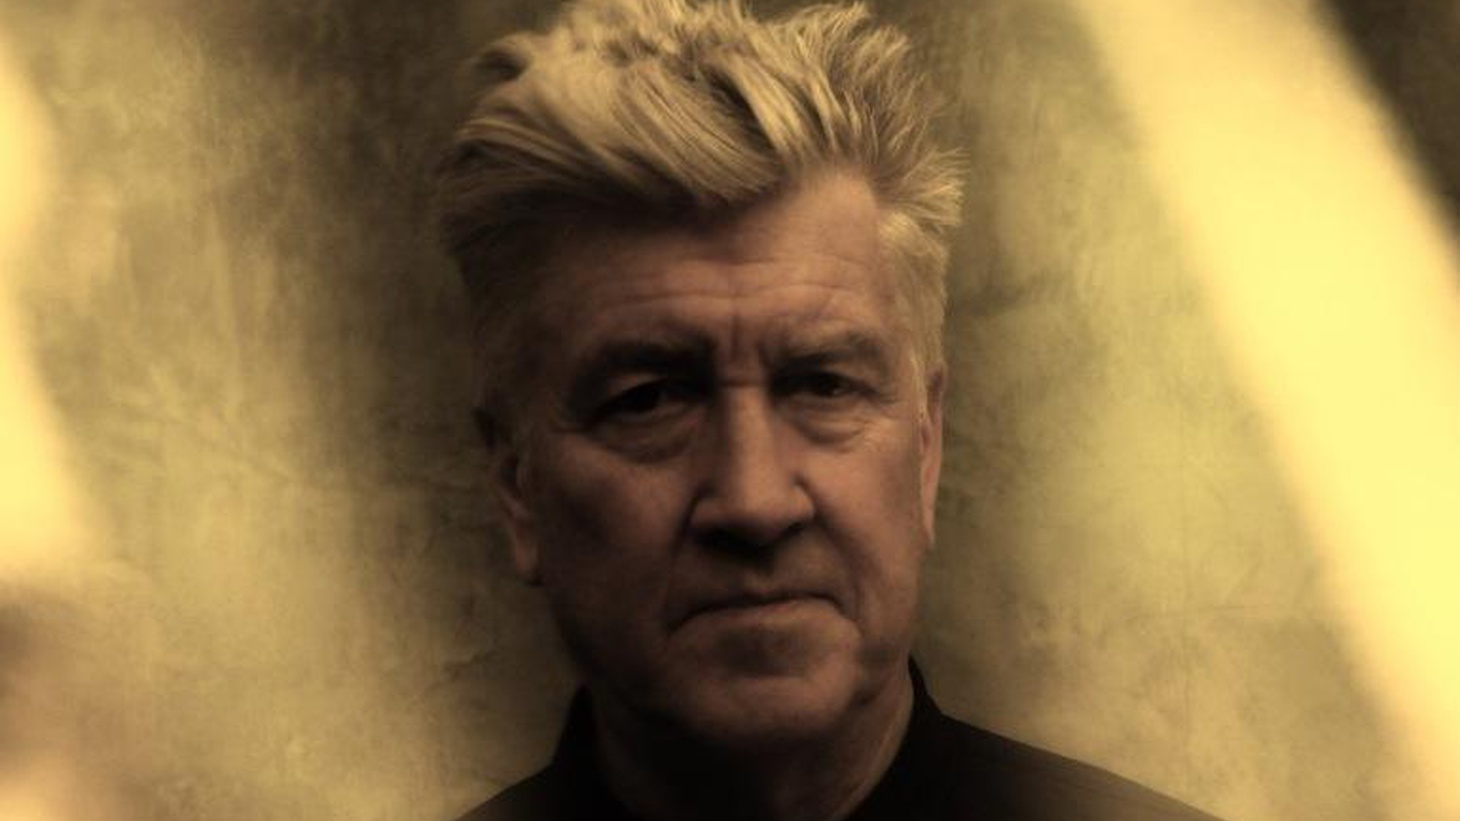 """Film director and painter turned musician David Lynch explores his """"modern blues"""" when he shares tracks from his new release, Crazy Clown Time..."""